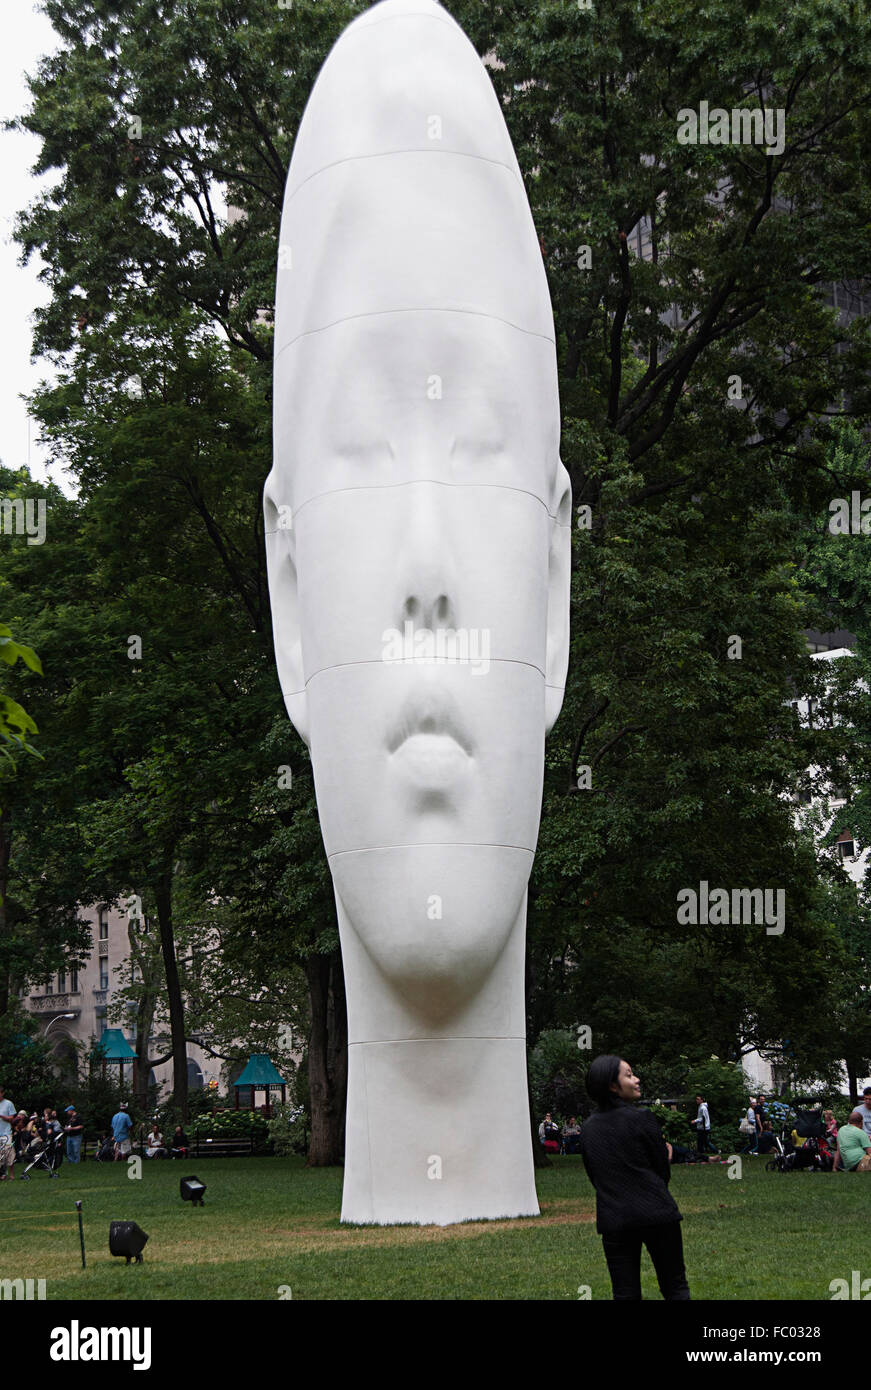 Sculpture by Jaume Plensa called Echo in Madison Park, NYC, June 2011 - Stock Image